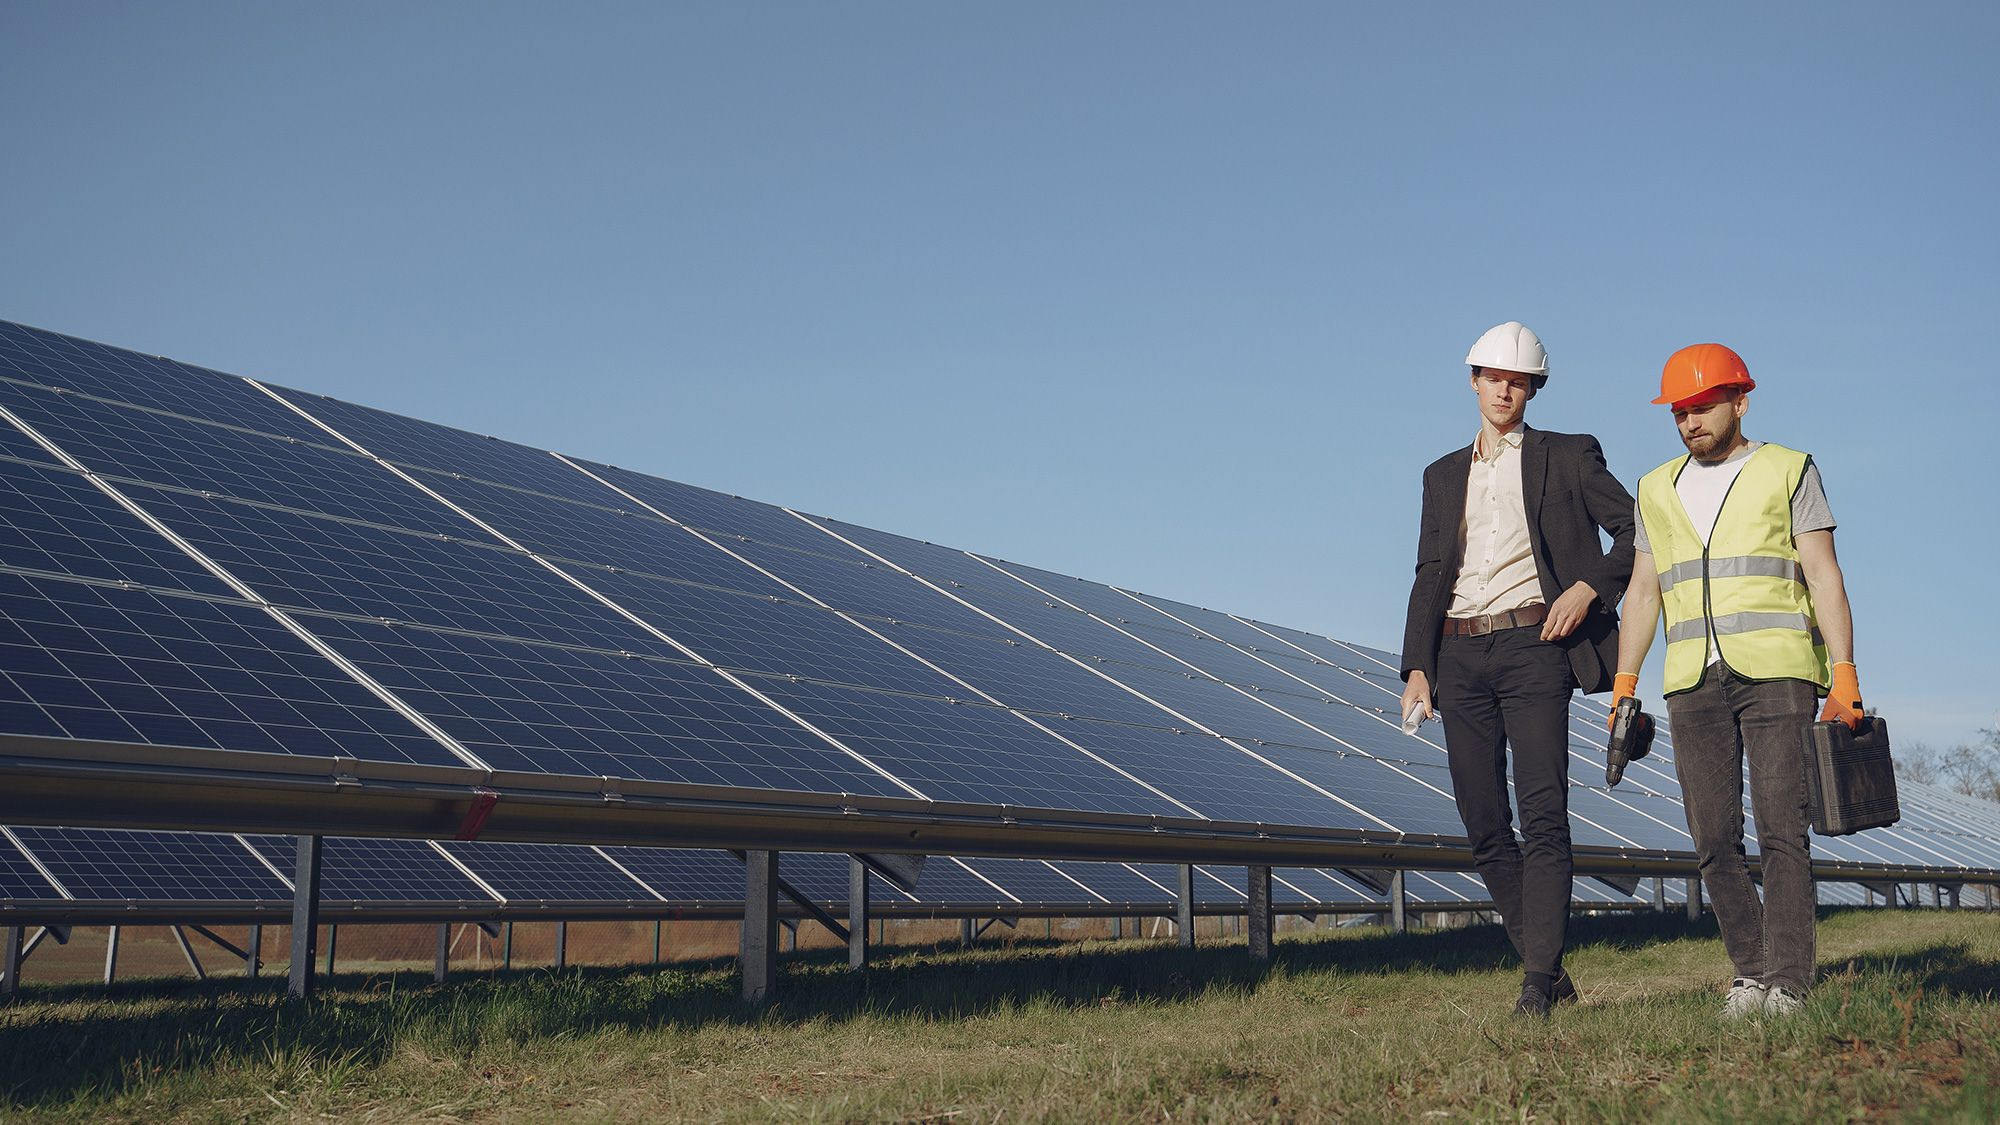 Solar farm engineer talking to a business owner with solar panels in the background